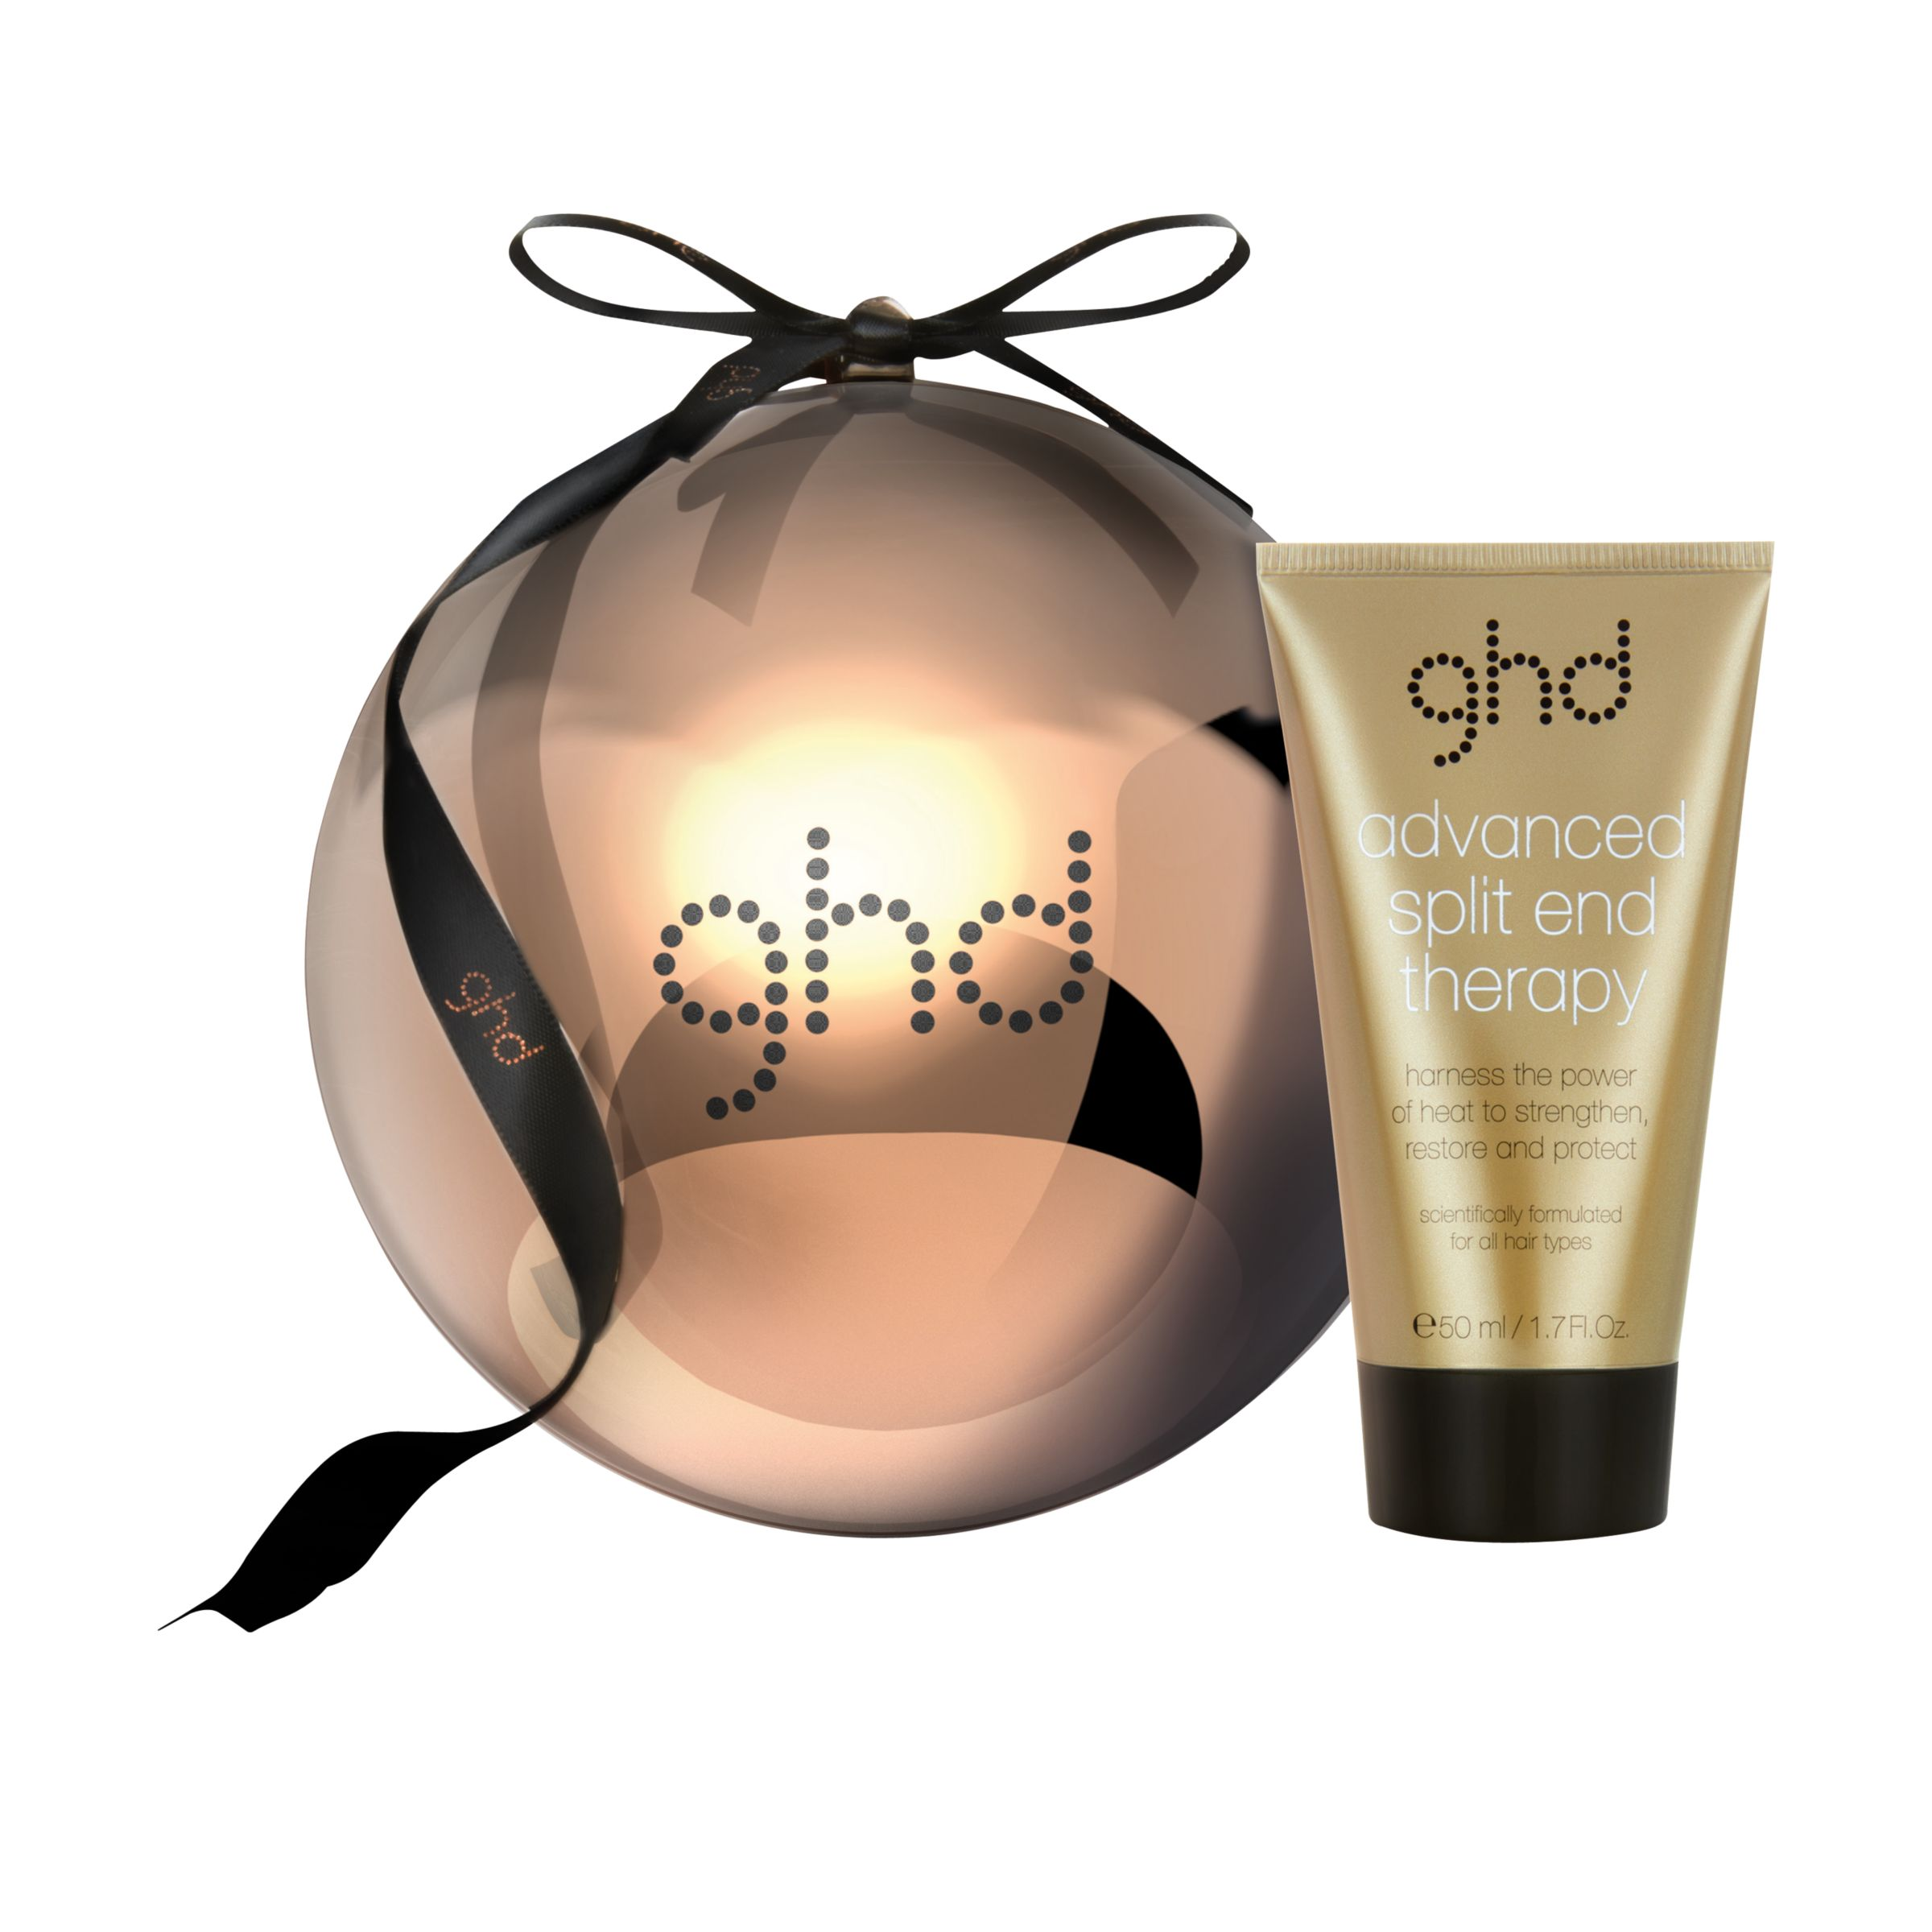 GHD ghd Advanced Split End Therapy Limited Edition Bauble